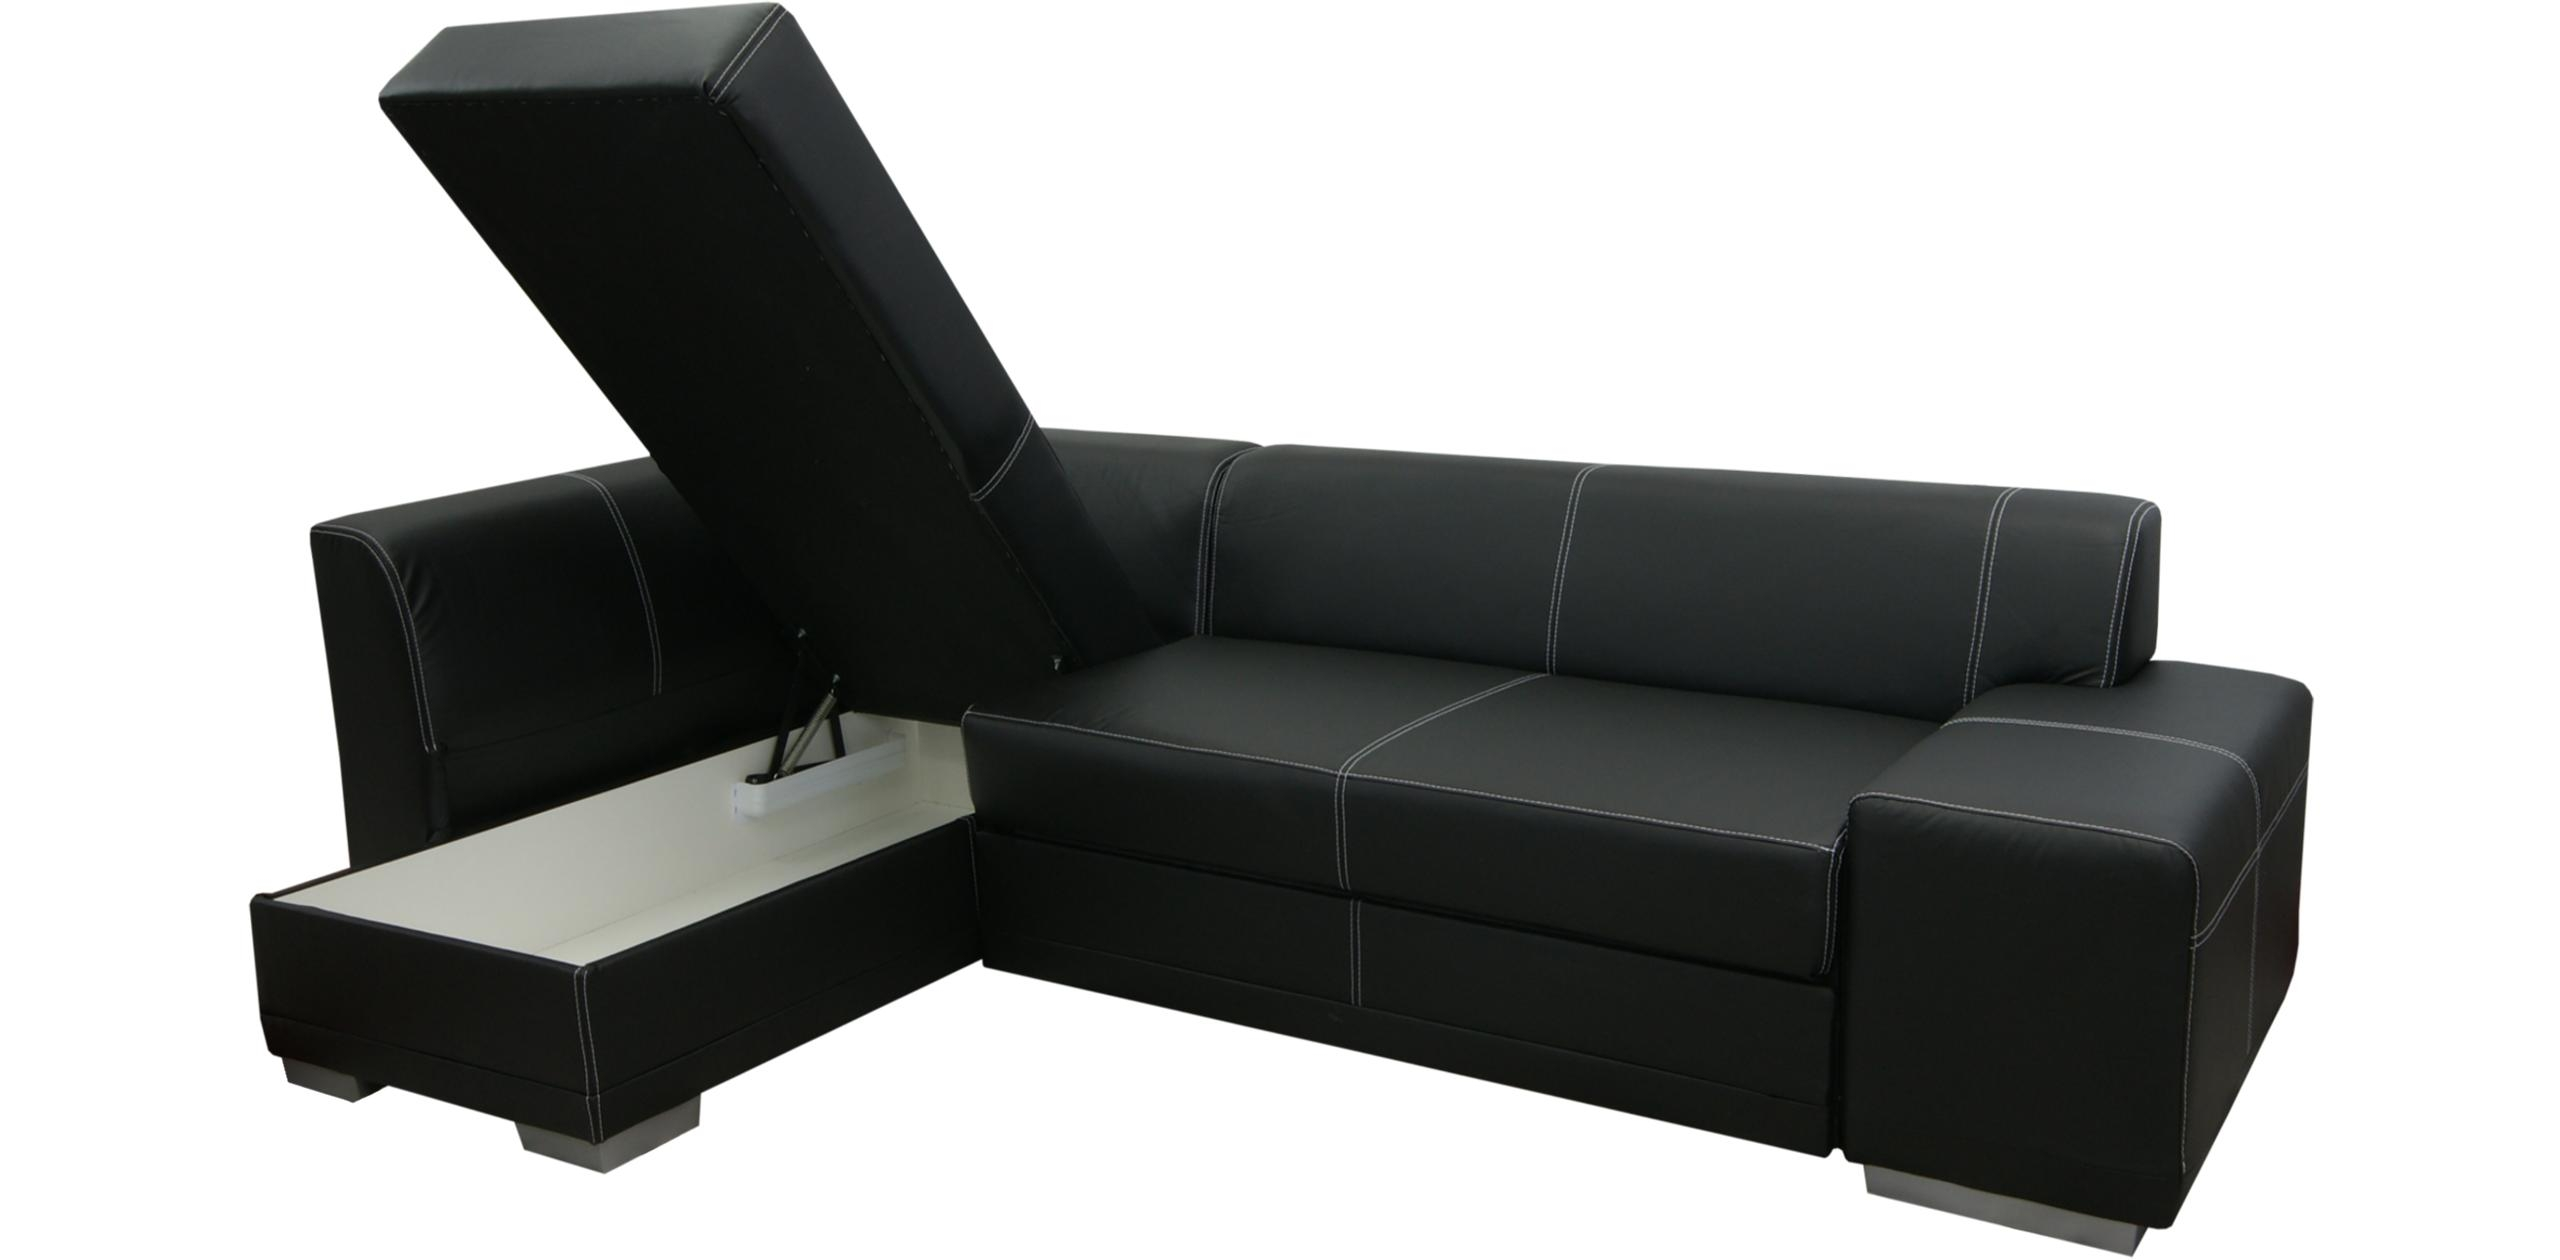 Corner Sofa Bed Second Hand – Leather Sectional Sofa With Regard To Cheap Corner Sofa Beds (View 13 of 20)